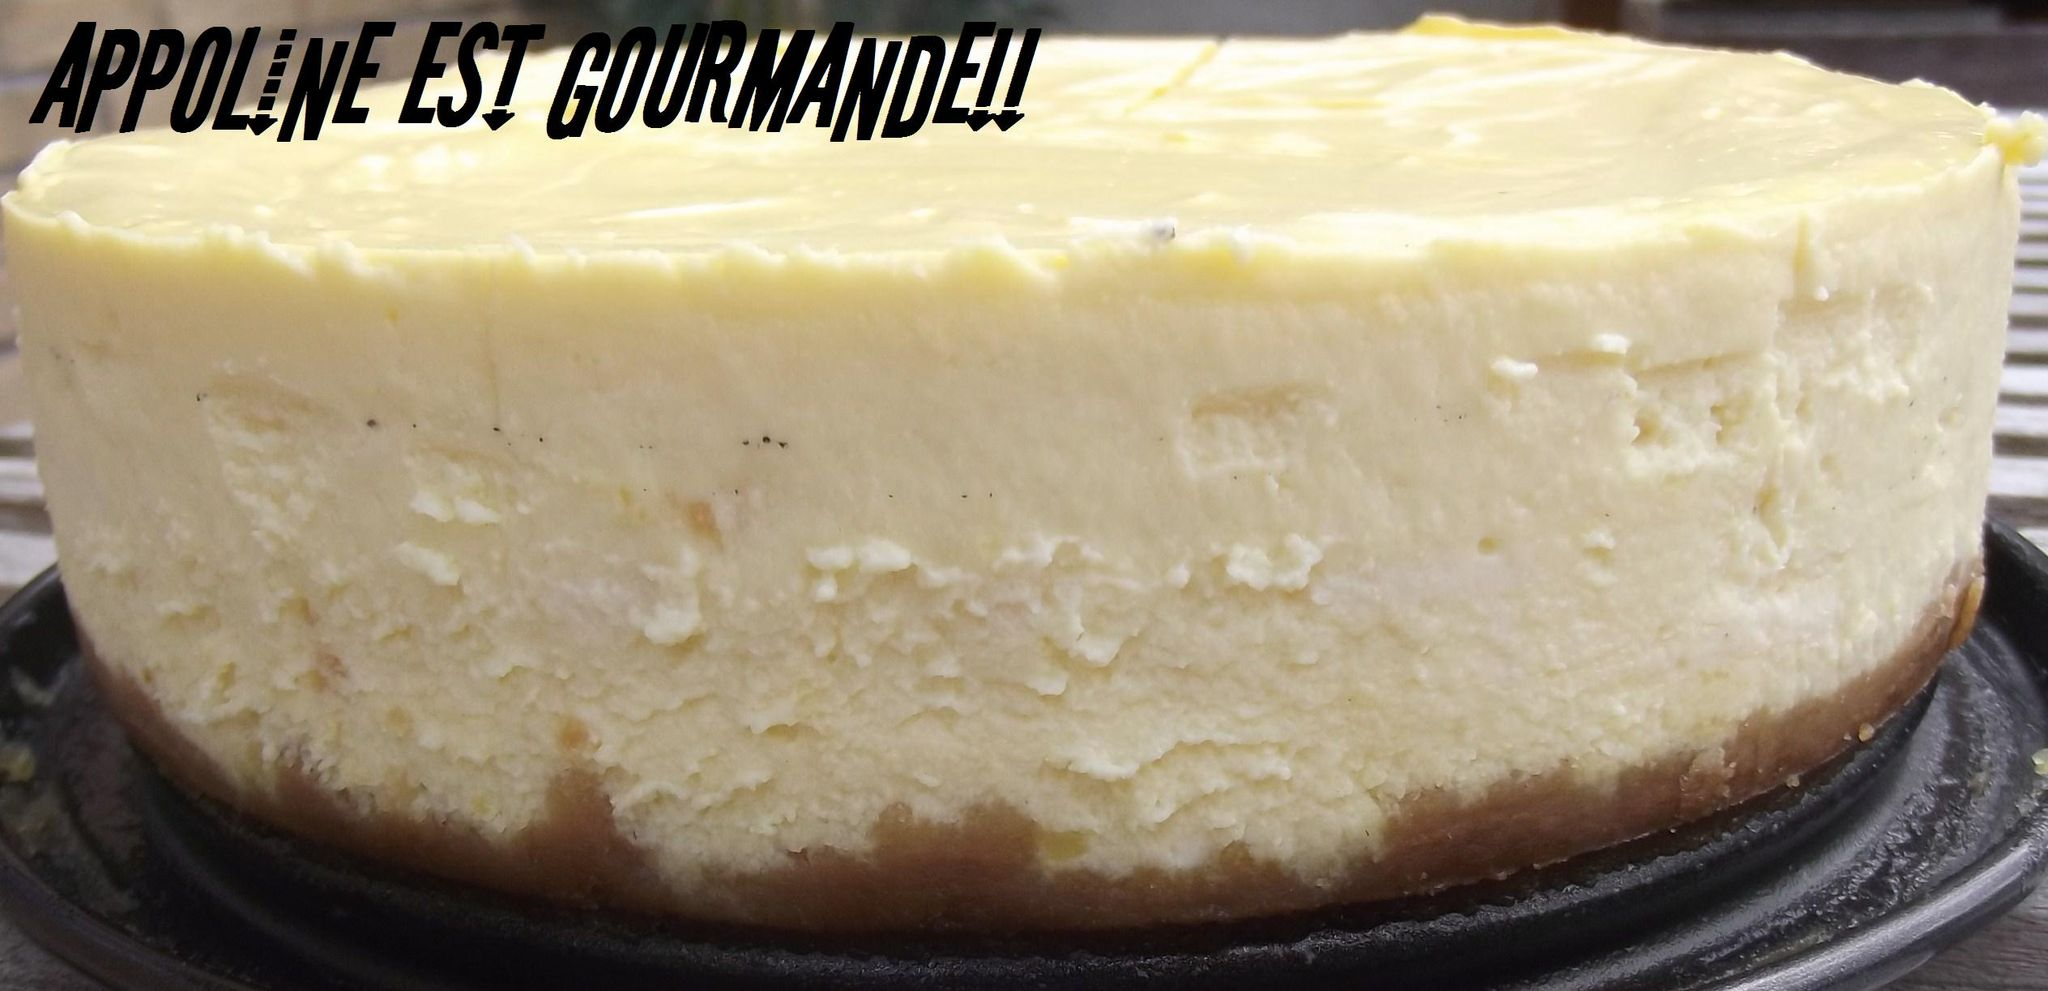 Cheesecake Au Fromage Blanc Appoline Est Gourmande